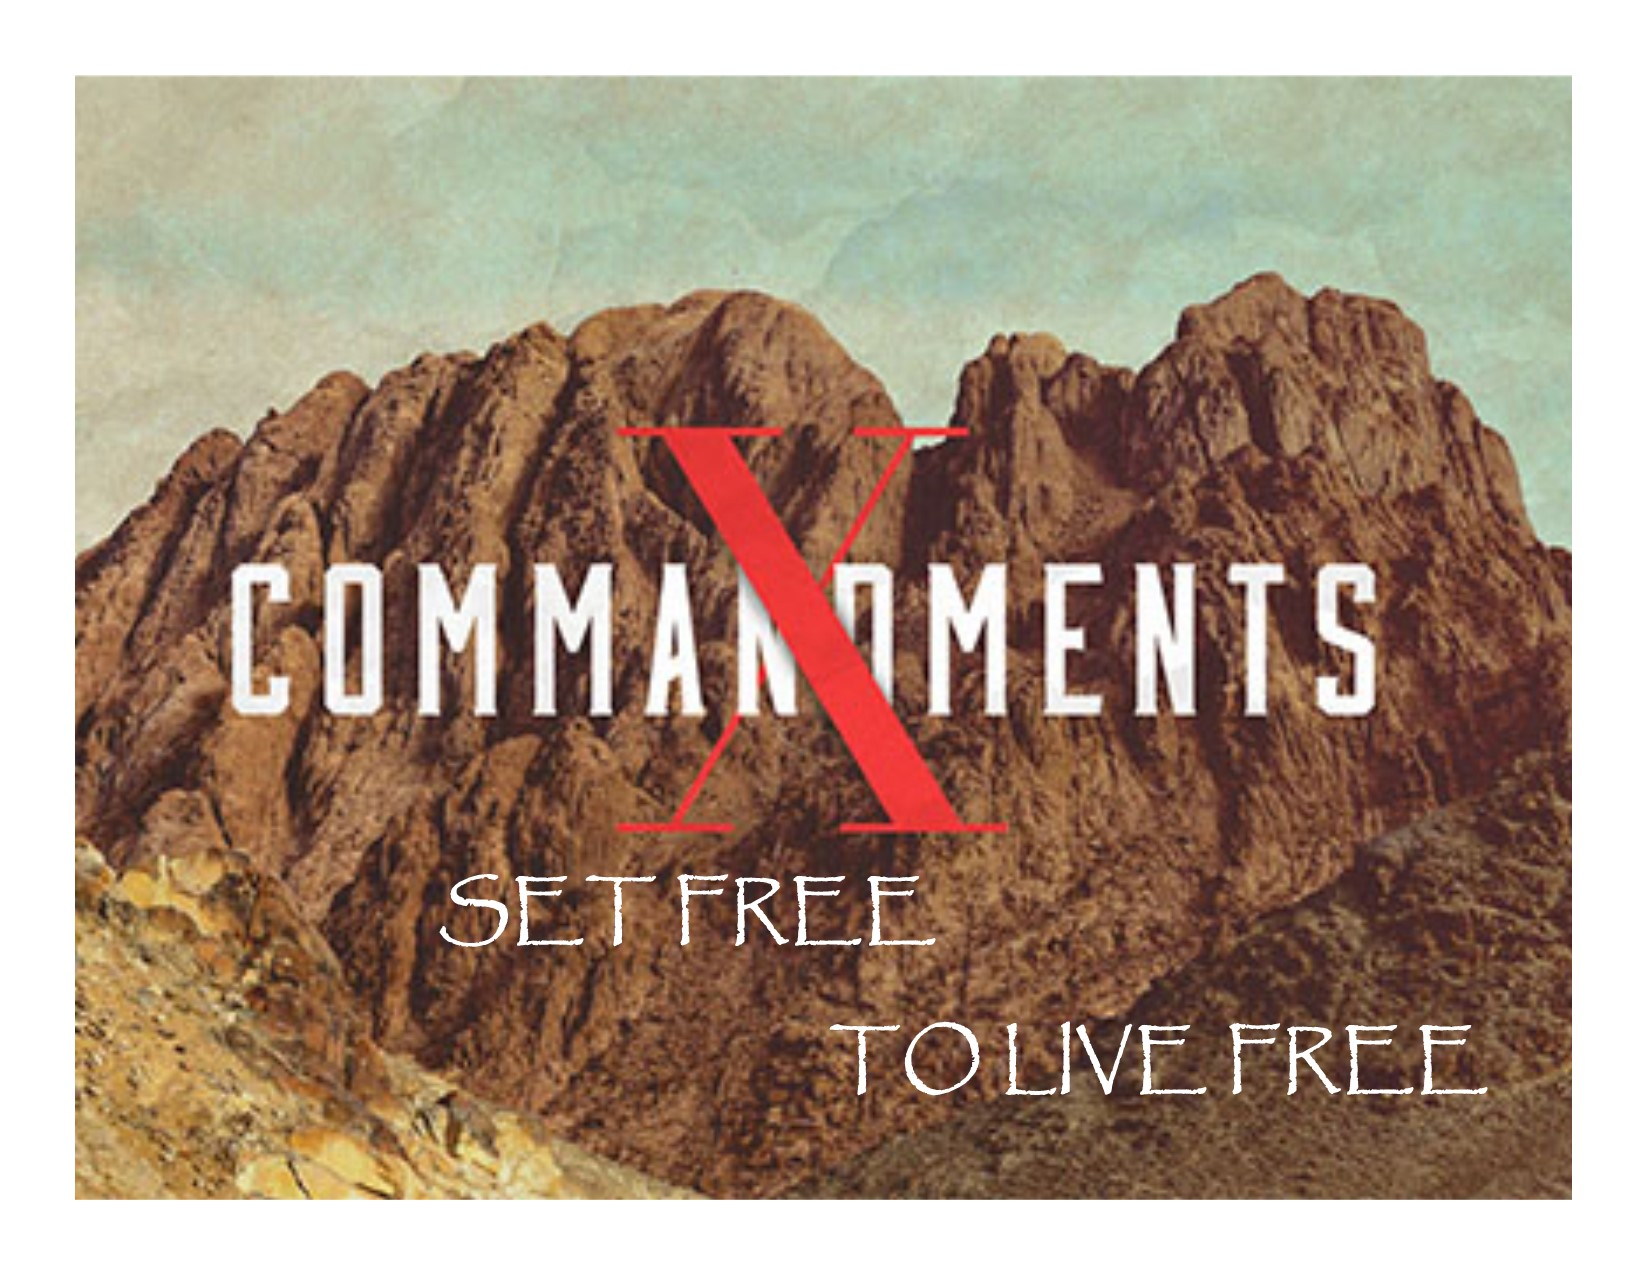 The Ten Commandments: Mind Set Free to Live Free